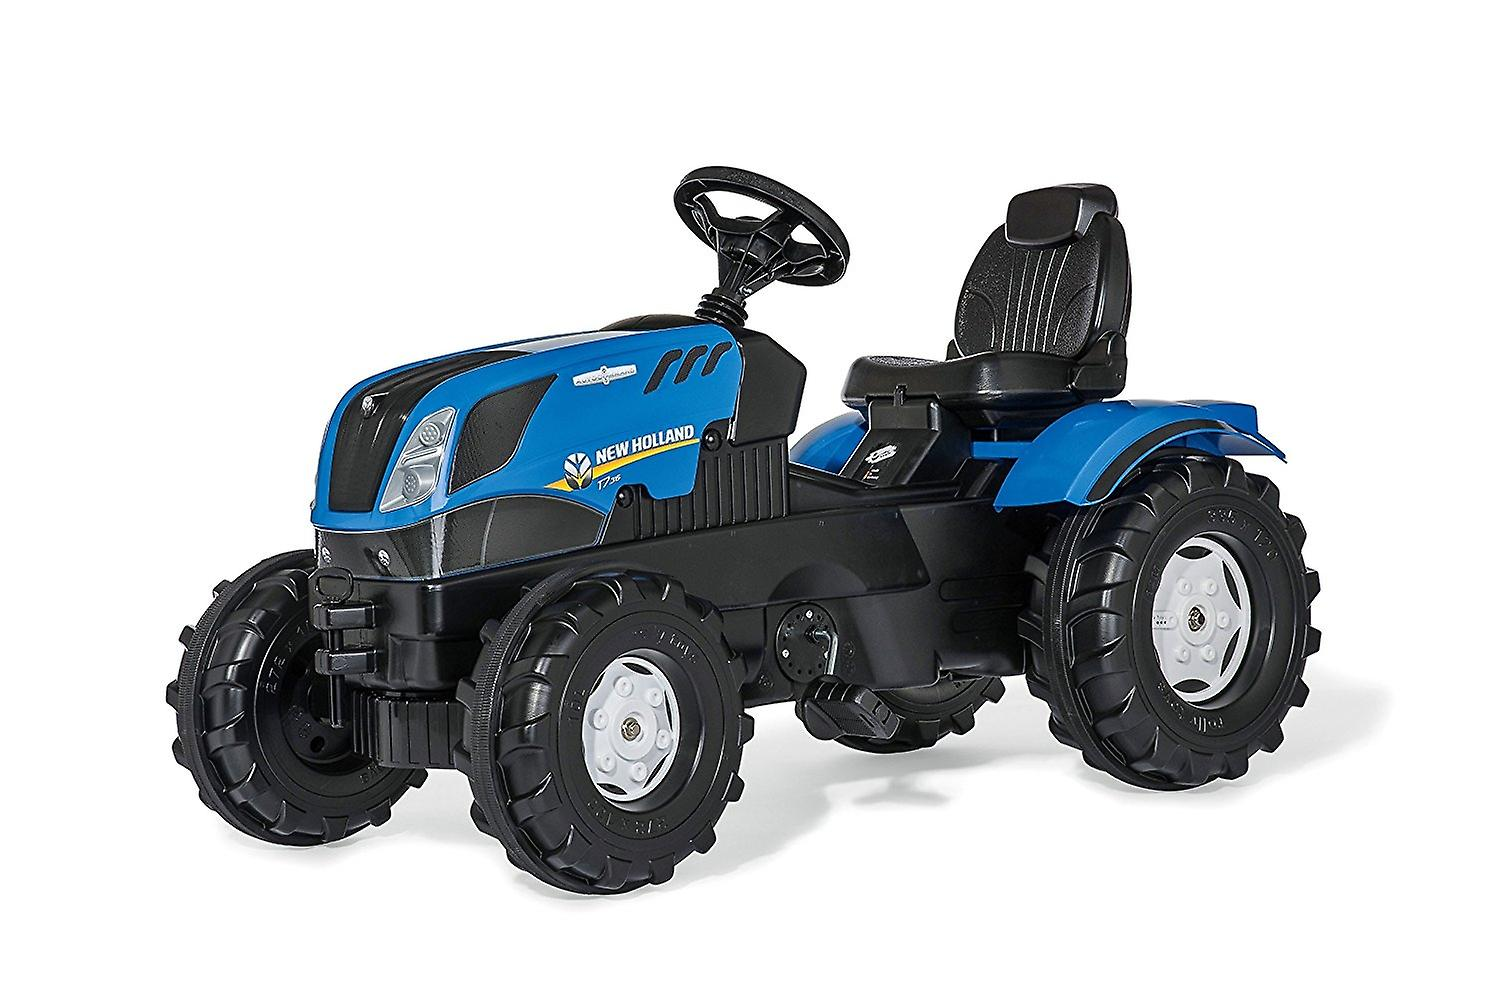 Rolly Toys New Holland T7 Pedal Tractor Blue and Black